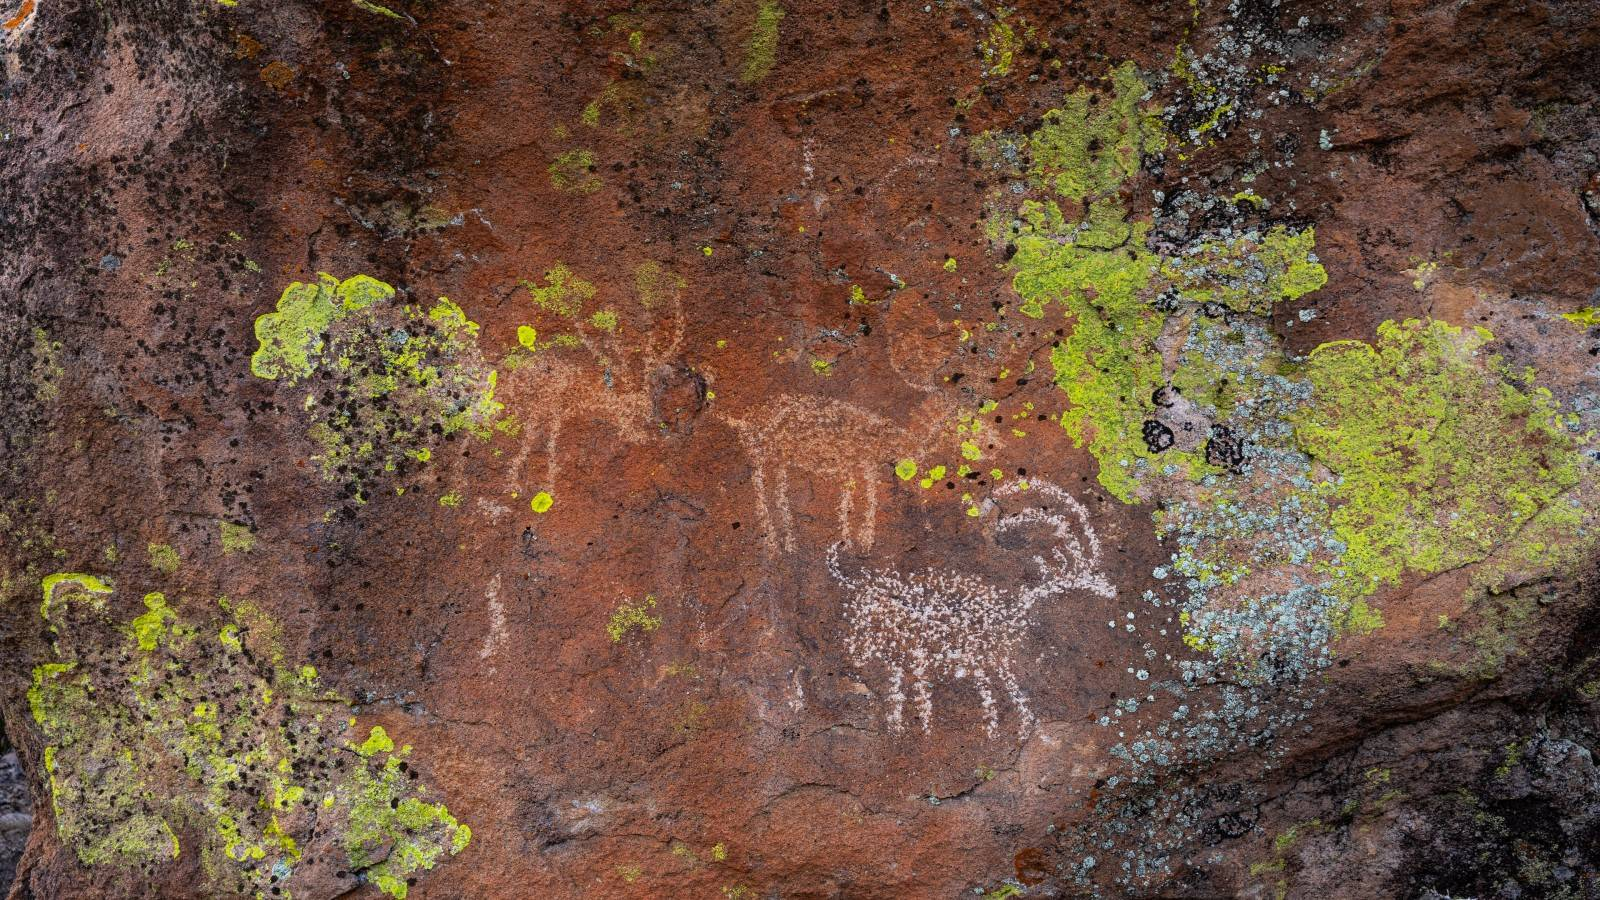 """<h3 style=""""text-align: center; padding: 50px;""""><span class=""""text-Intro-style"""">Bighorn sheep figures at Basin and Range National Monument. © STEPHEN ALVAREZ</span></h3>"""